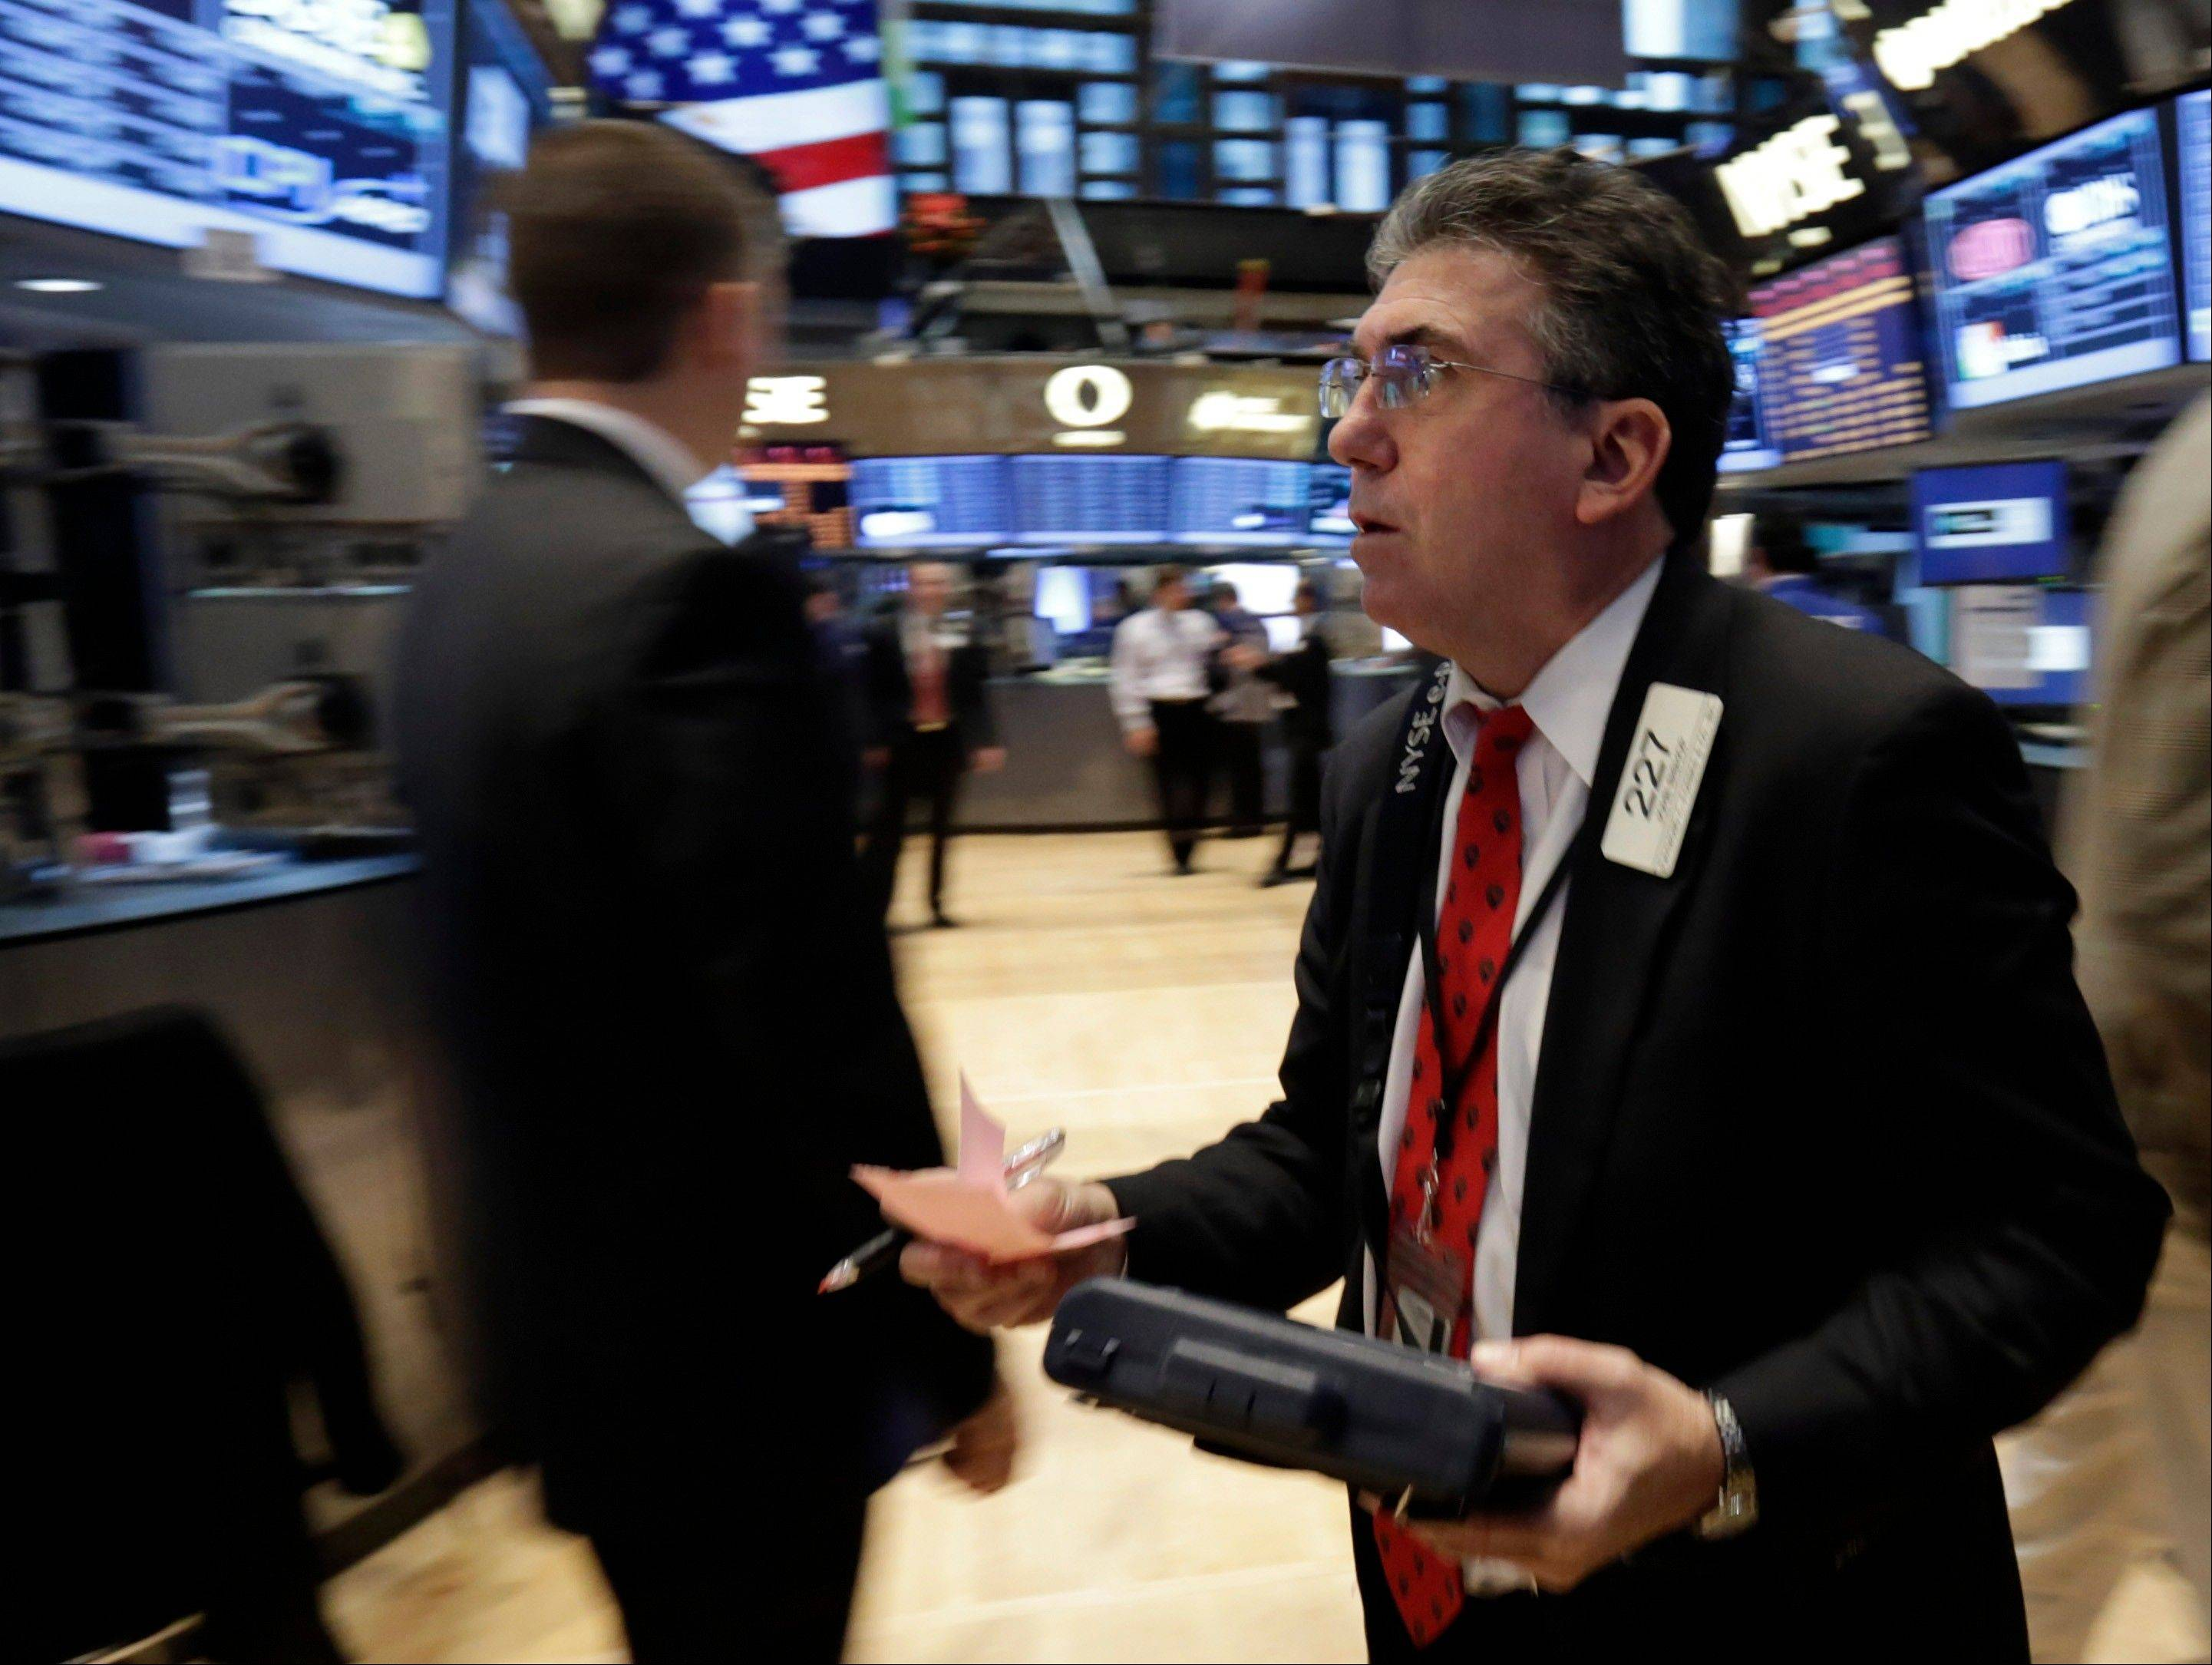 Stocks advanced, sending the Standard & Poor's 500 Index to the highest level in two months, amid signs of progress in efforts by President Barack Obama and Republicans to reach agreement on a new budget in Washington.